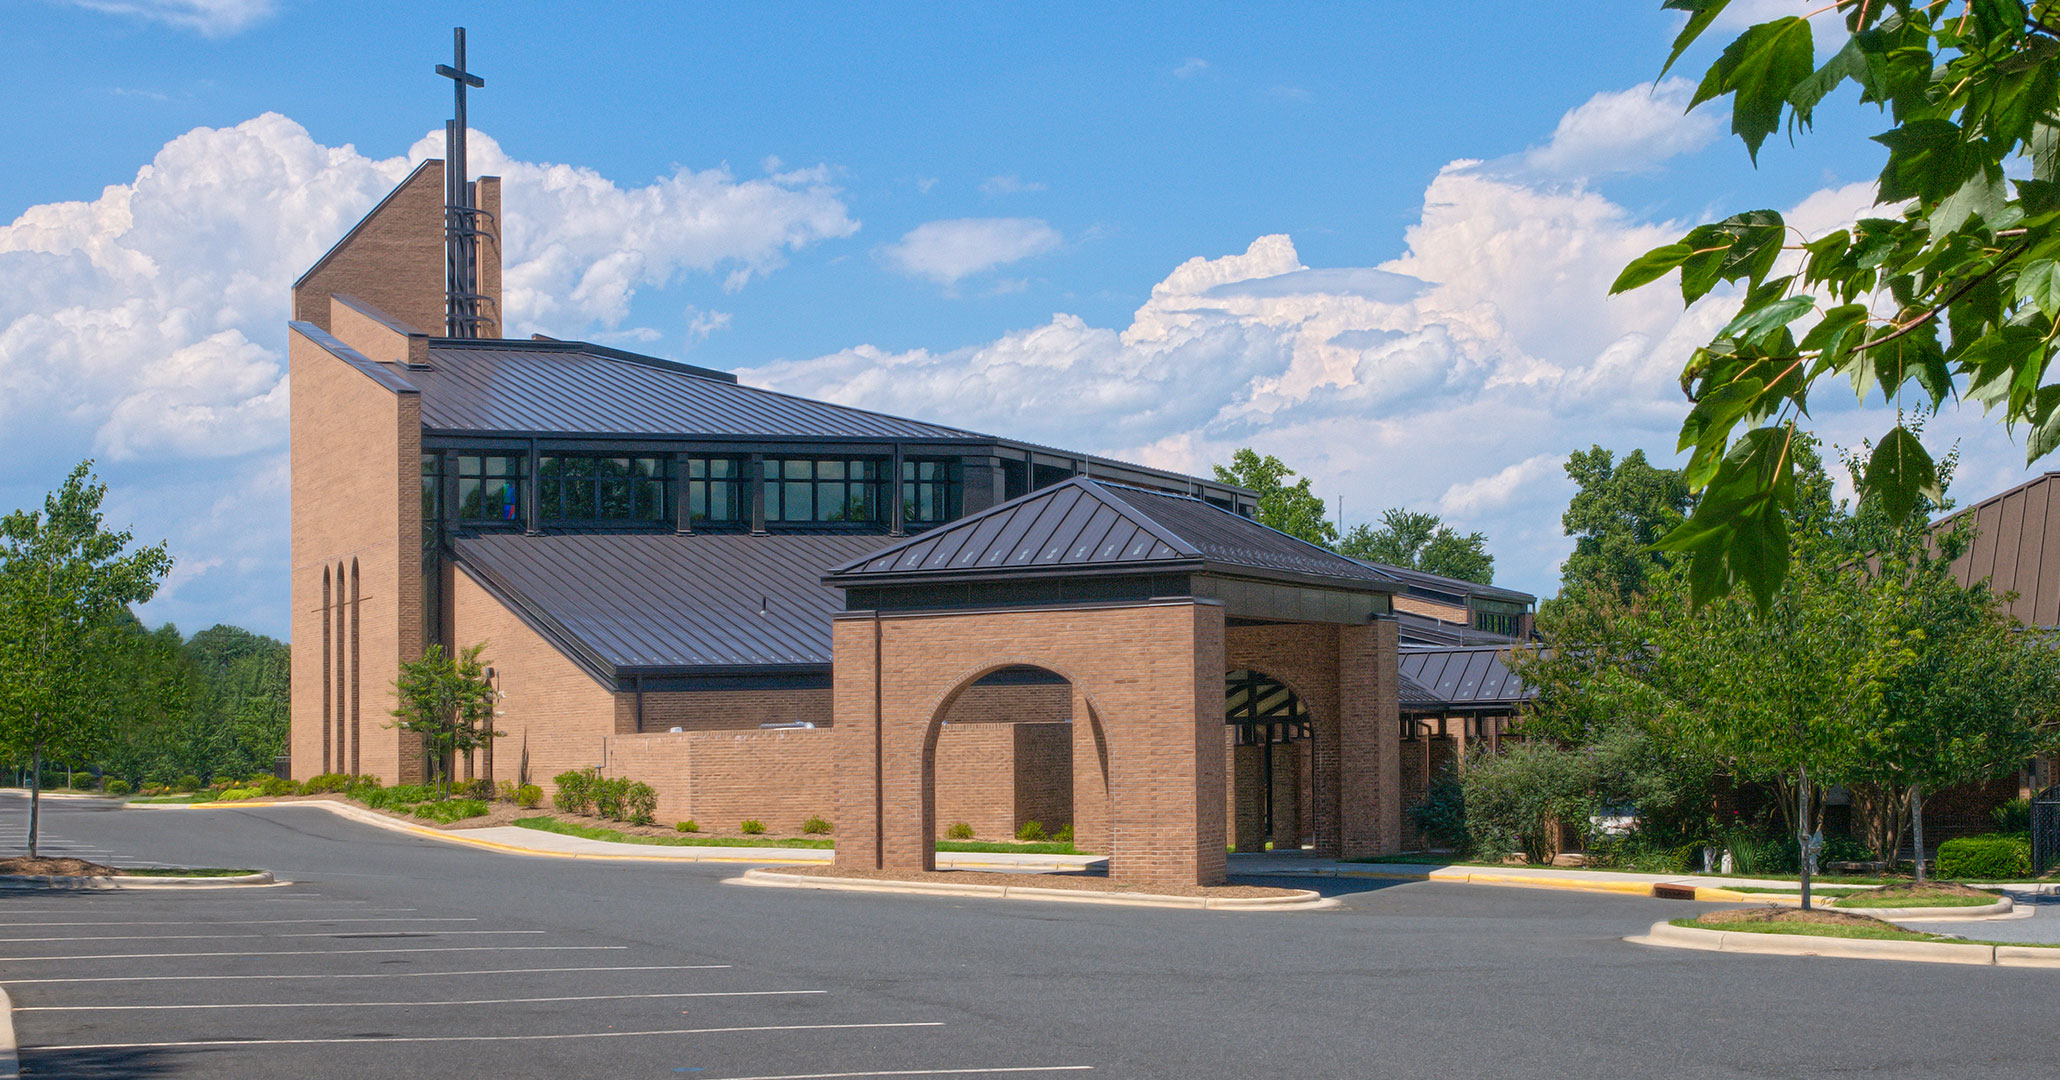 Boudreaux architects are experienced designing Catholic churches.